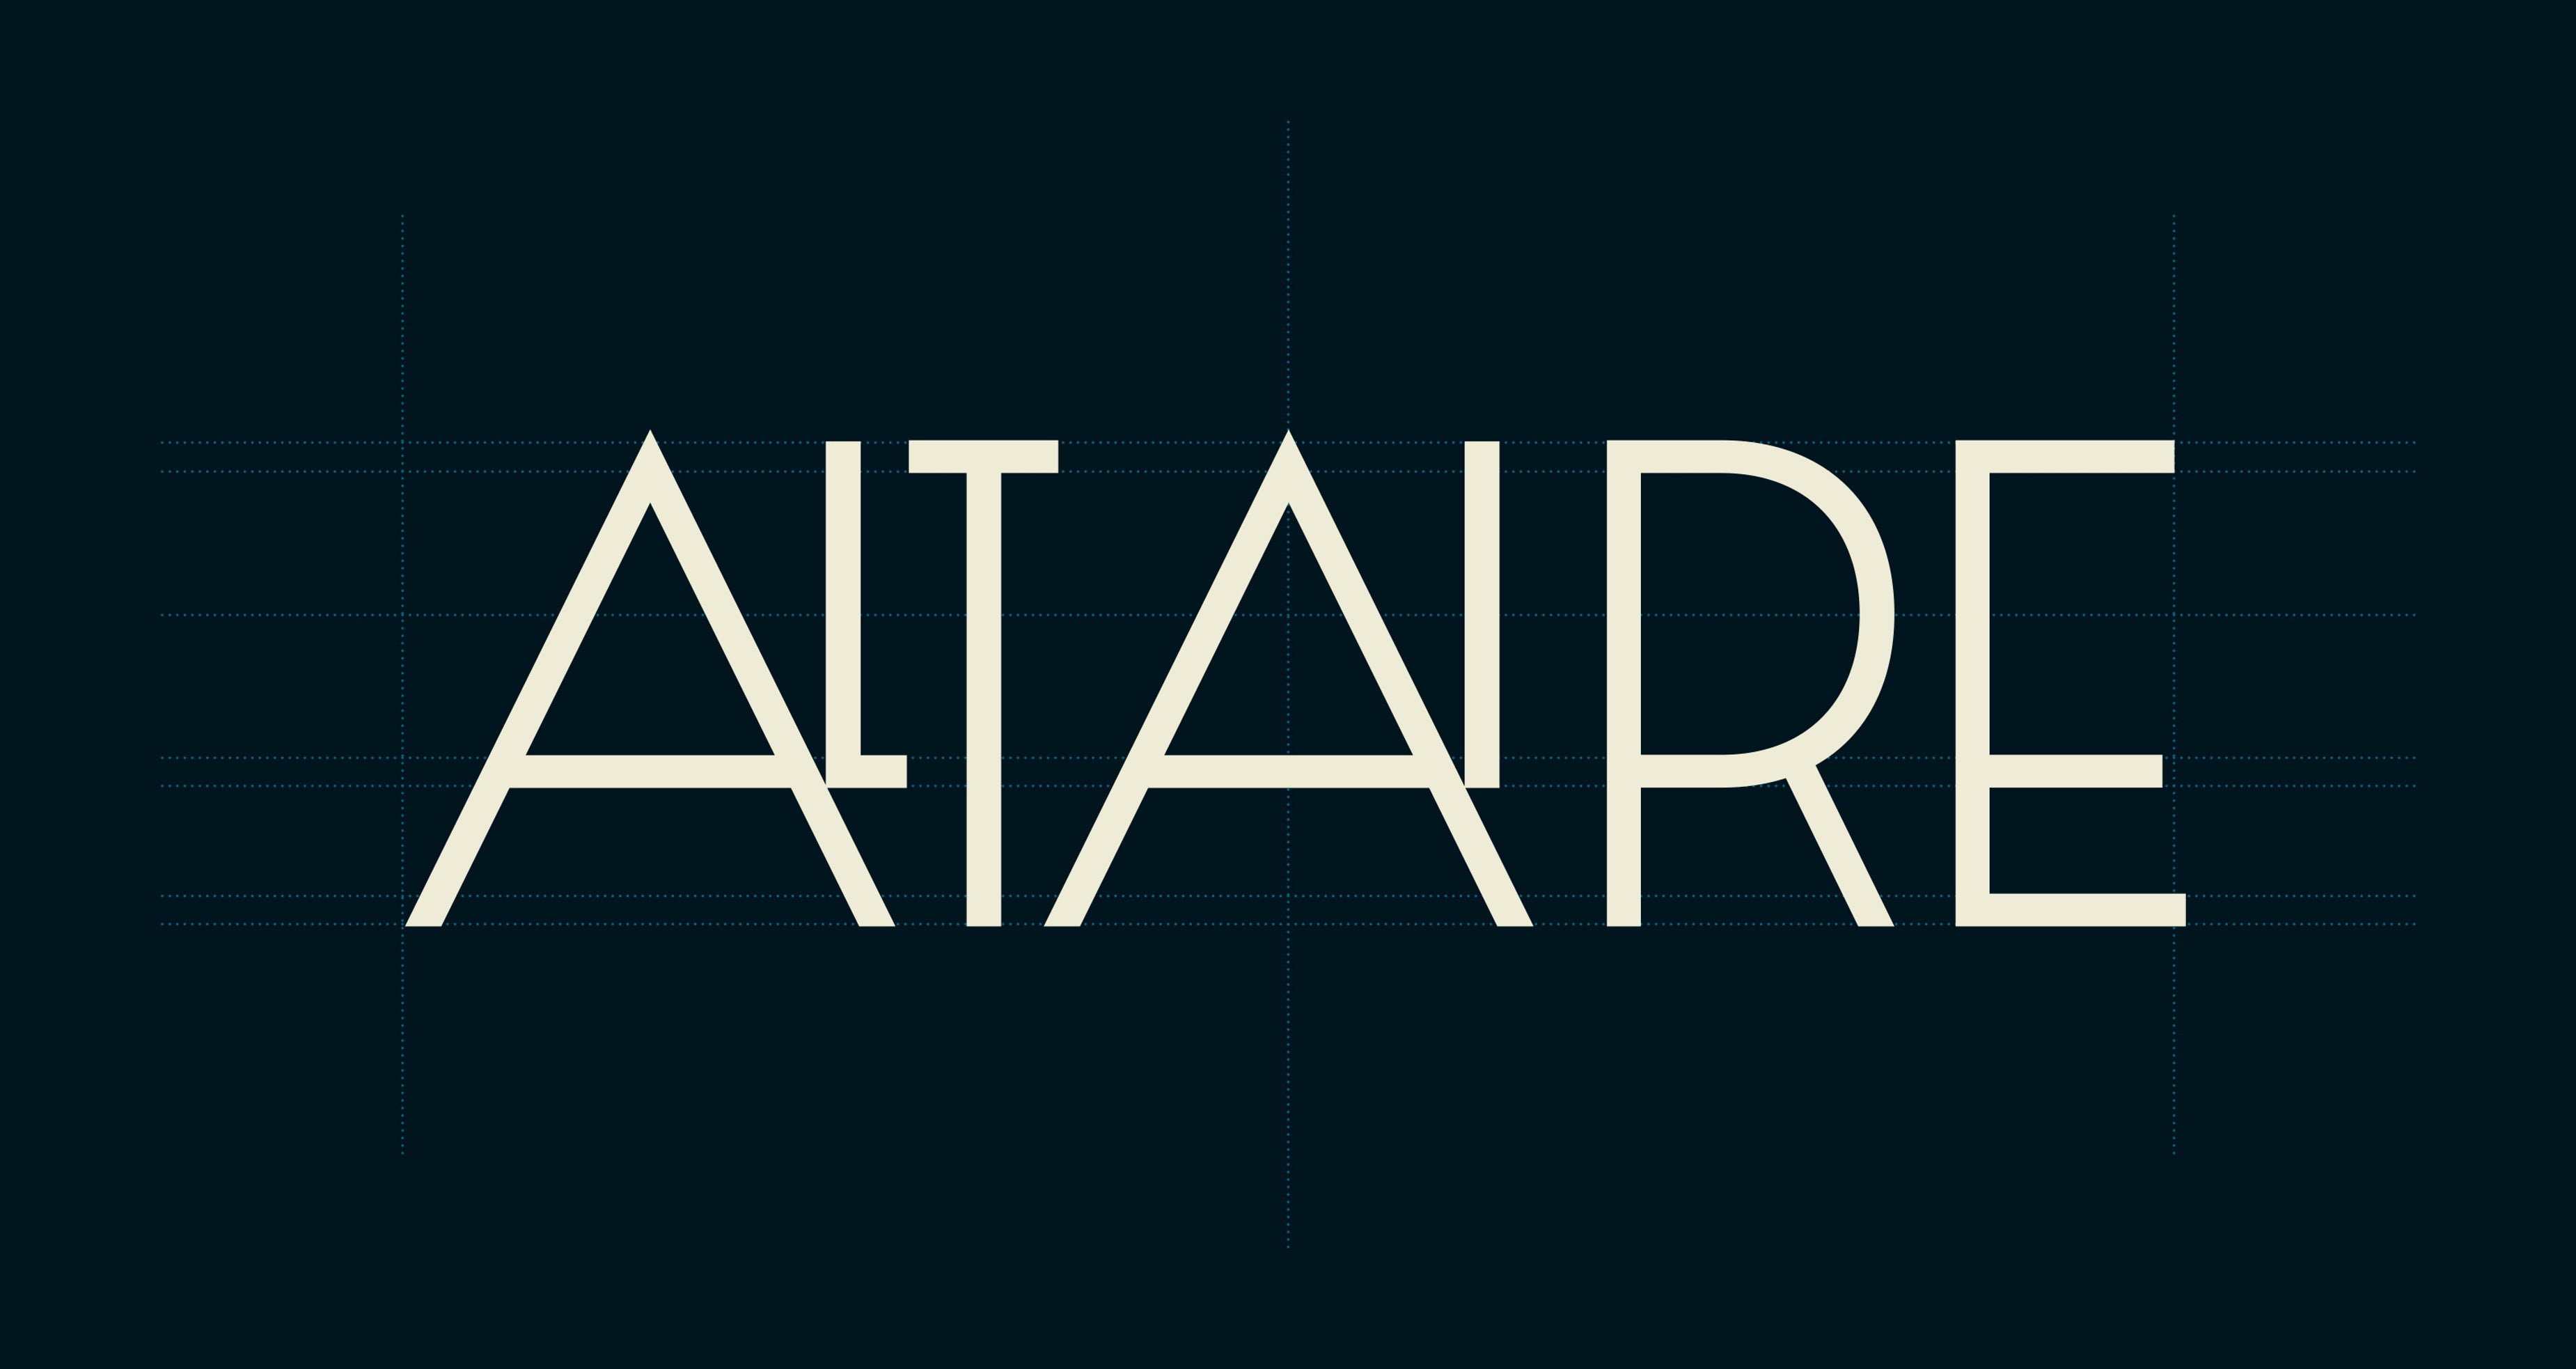 Altaire Logo details Brand Typography Graphic Design Chicago Span02